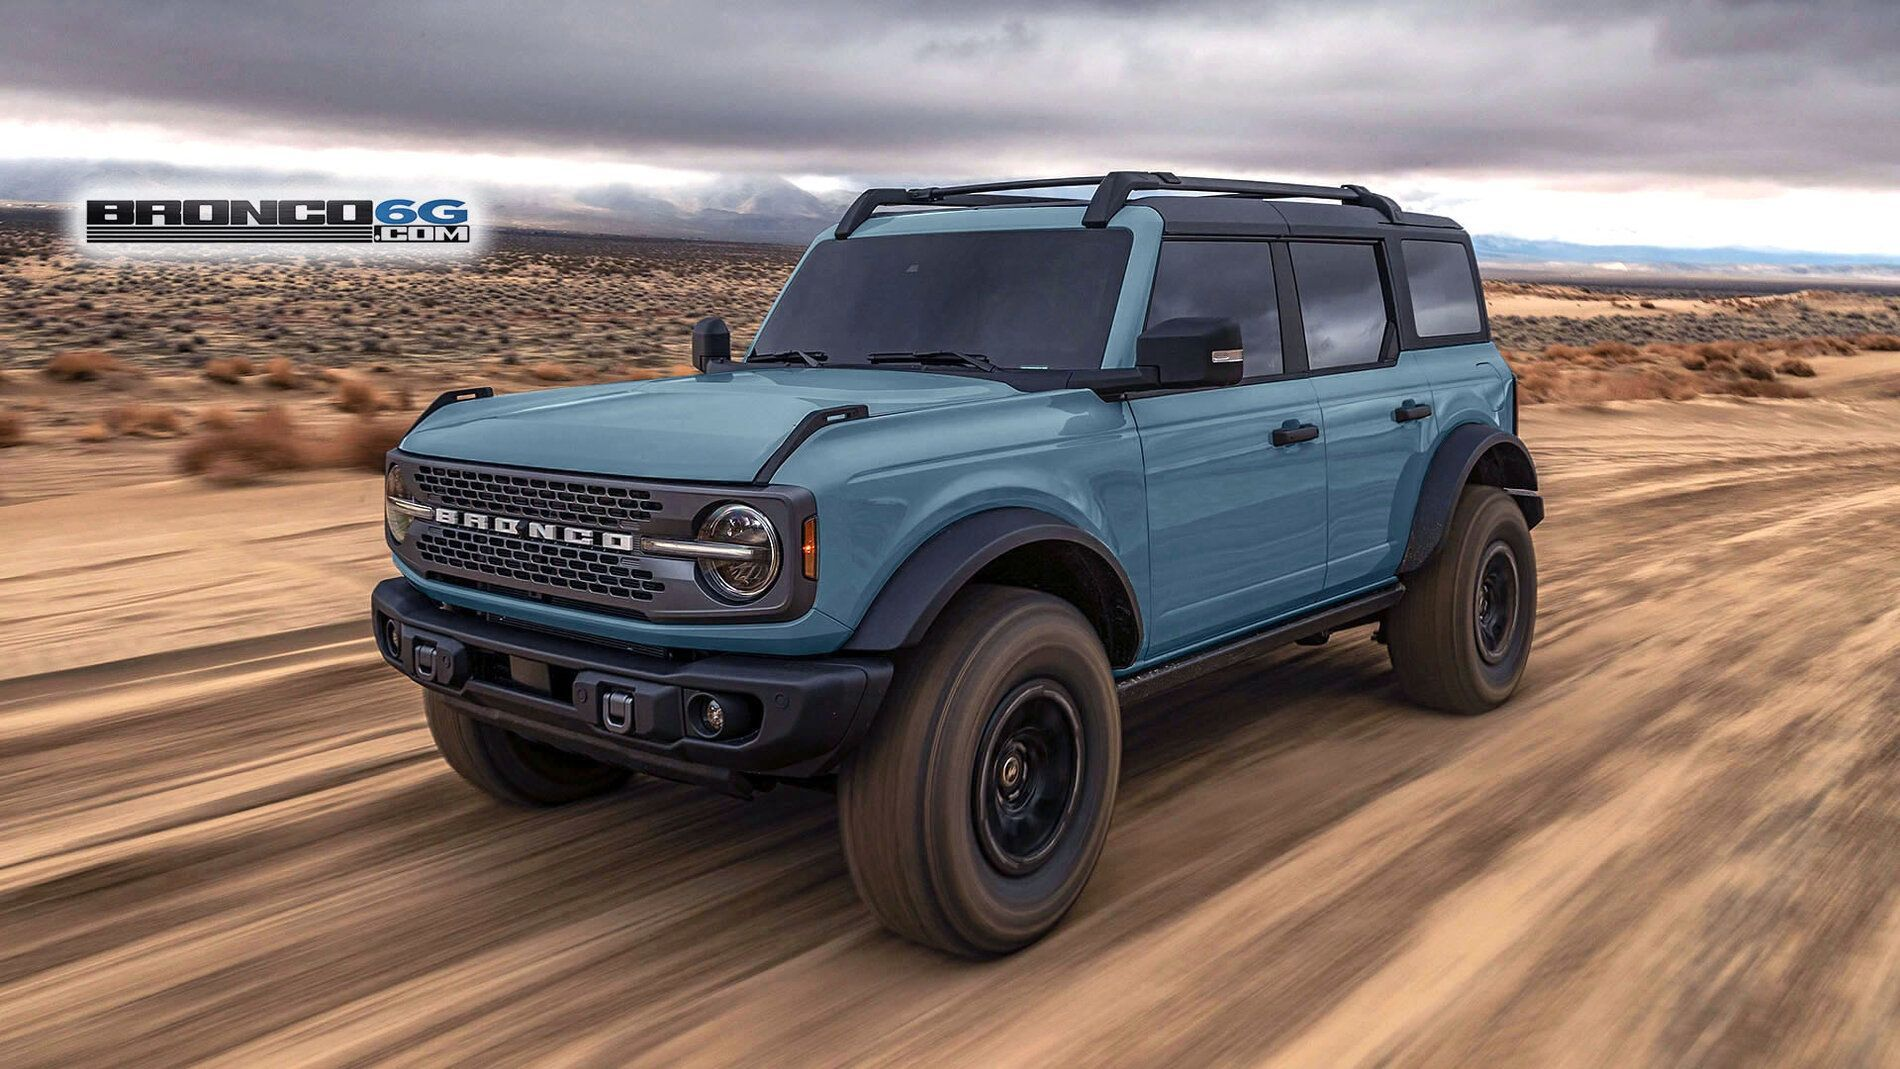 Bronco Discover Area 51 Bronco First Real Life Looks On Bronco Sport New Pics In 2020 Ford Bronco New Bronco Bronco Sports